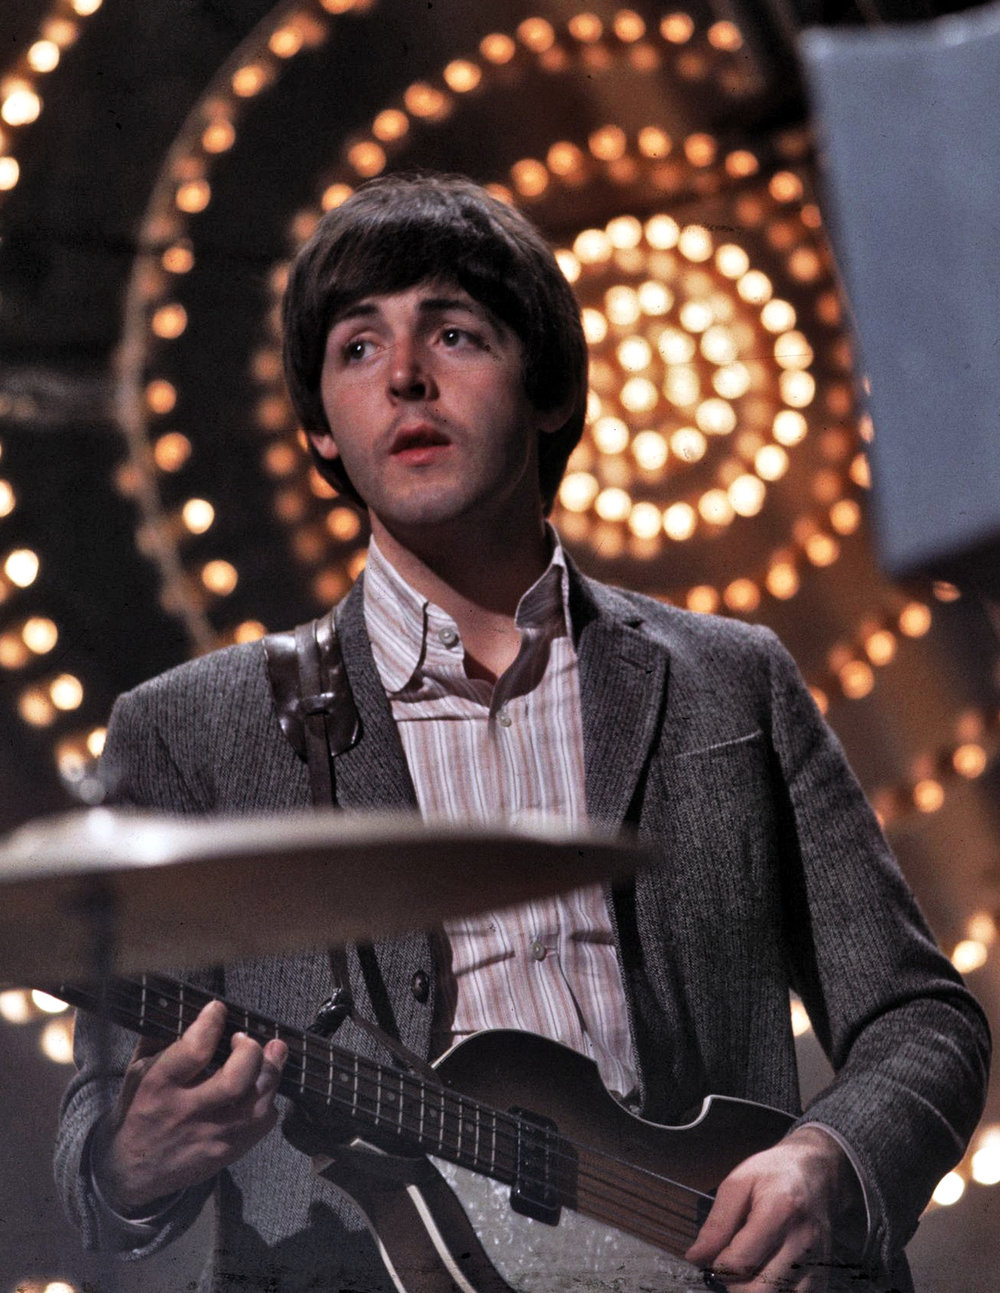 Paul McCartney rehearsing on Top of the Pops, June 16th, 1966.